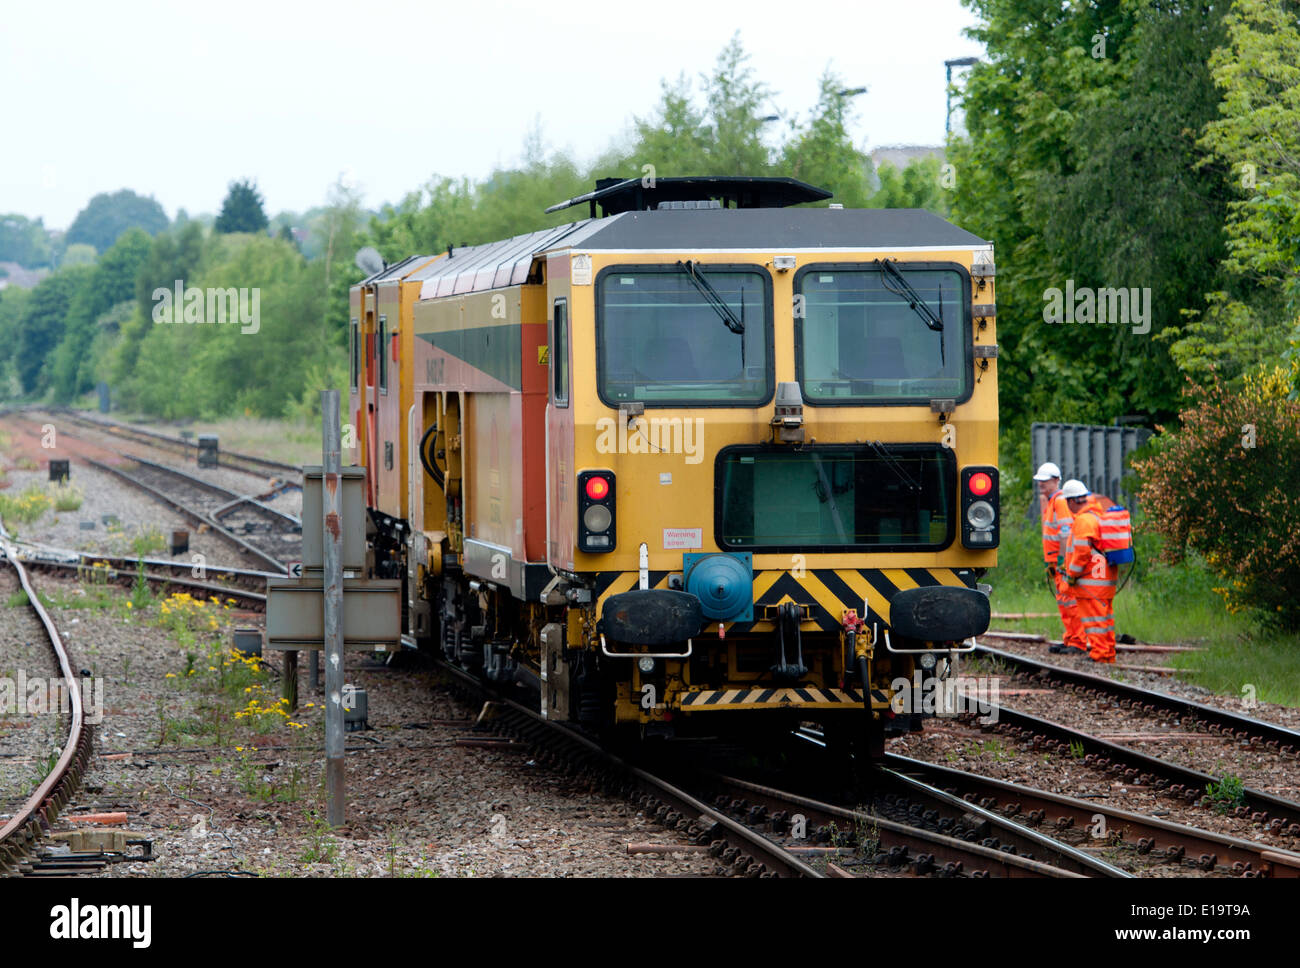 Colas Rail line tamper DR 73806 'Karine' at Stourbridge Junction, West Midlands, UK - Stock Image